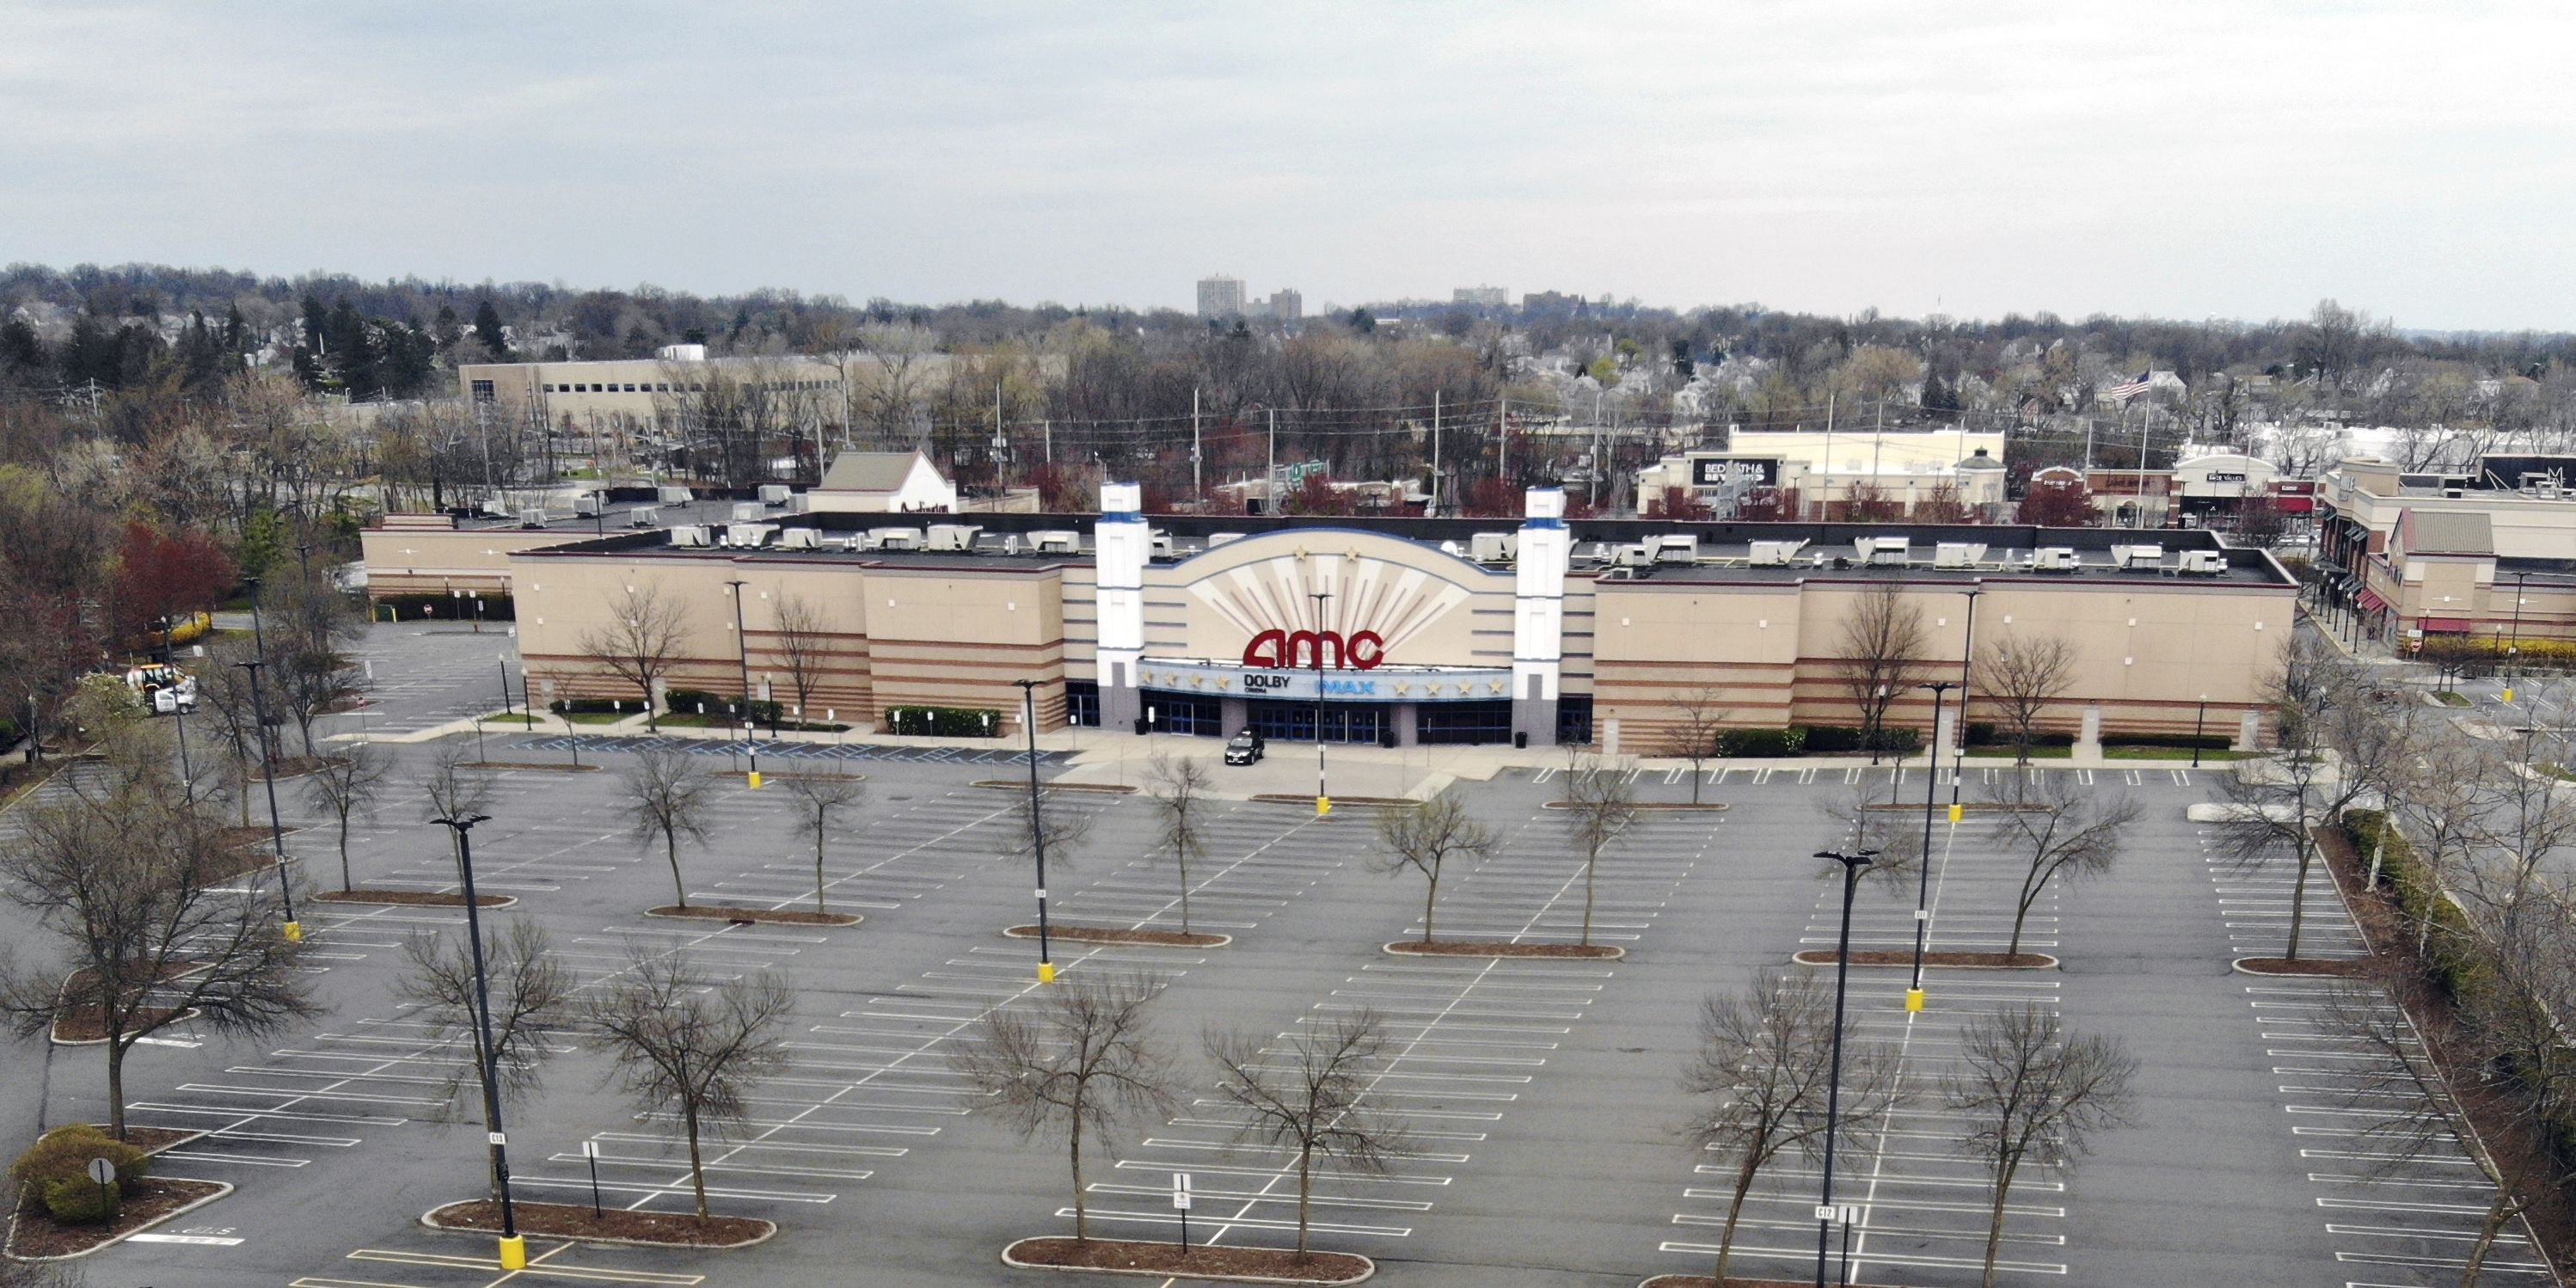 Credit rating agency says AMC Theaters is in big trouble